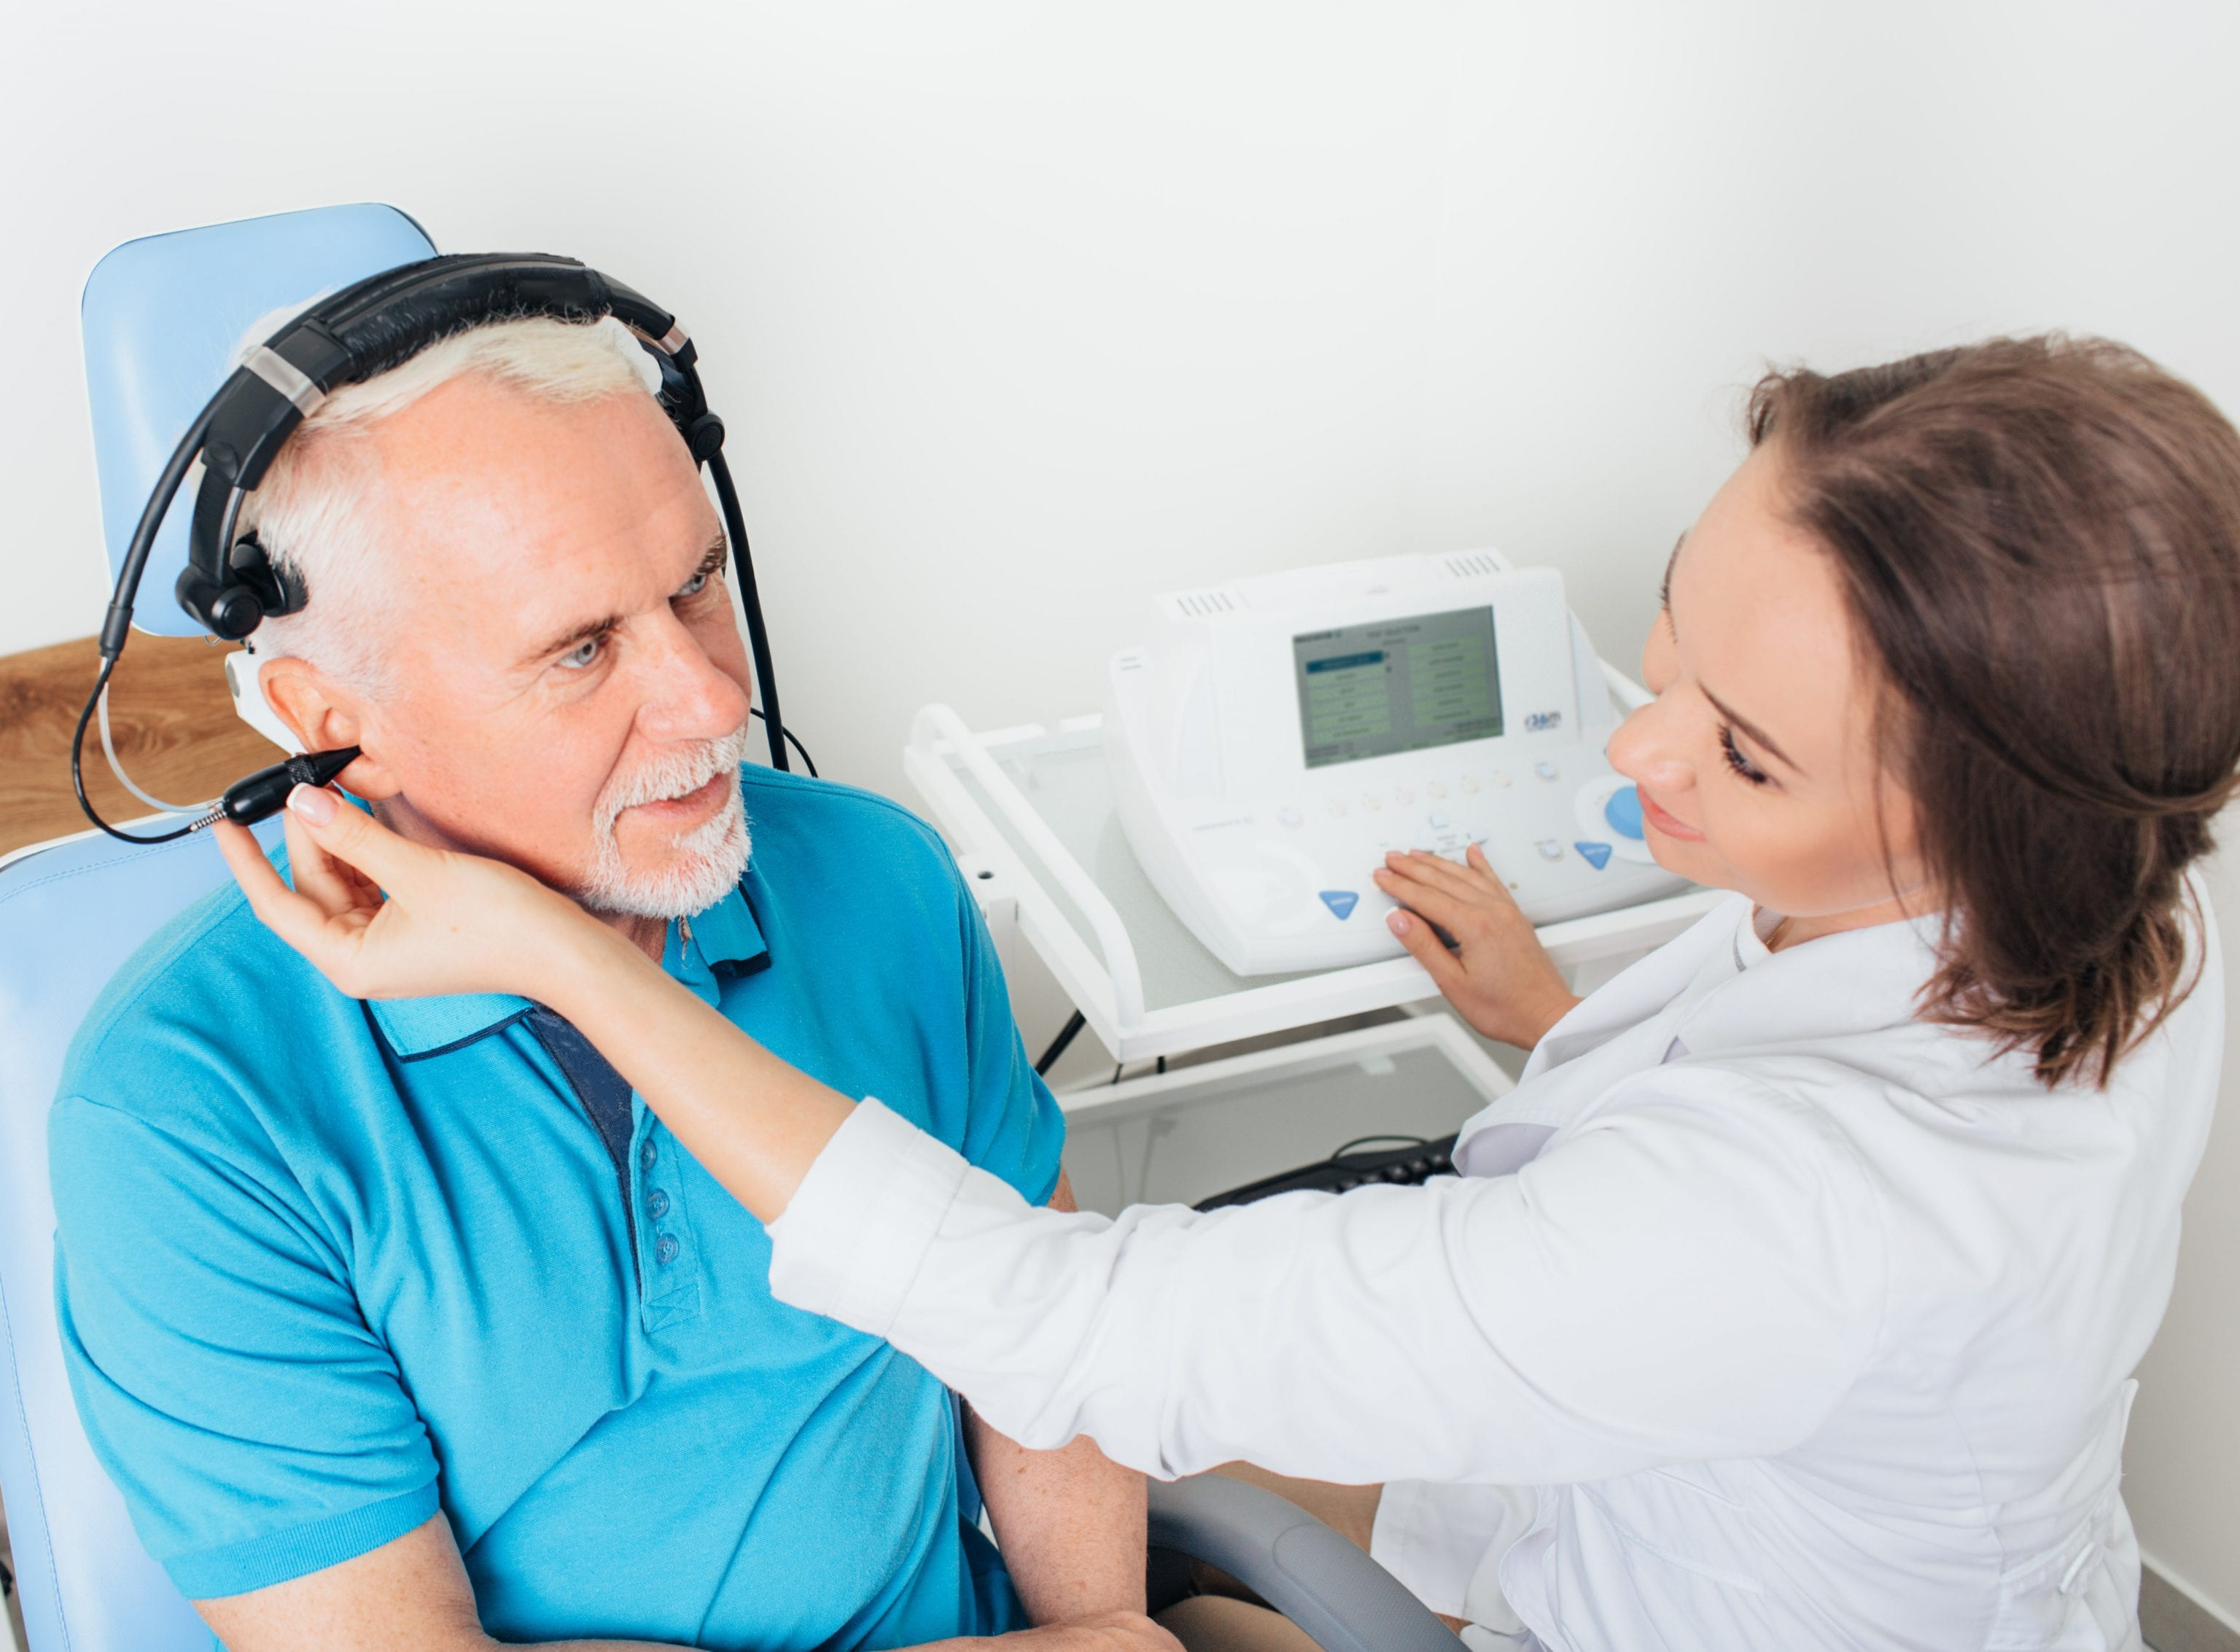 man wearing blue polo shirt having hearing examined by professional audiologist